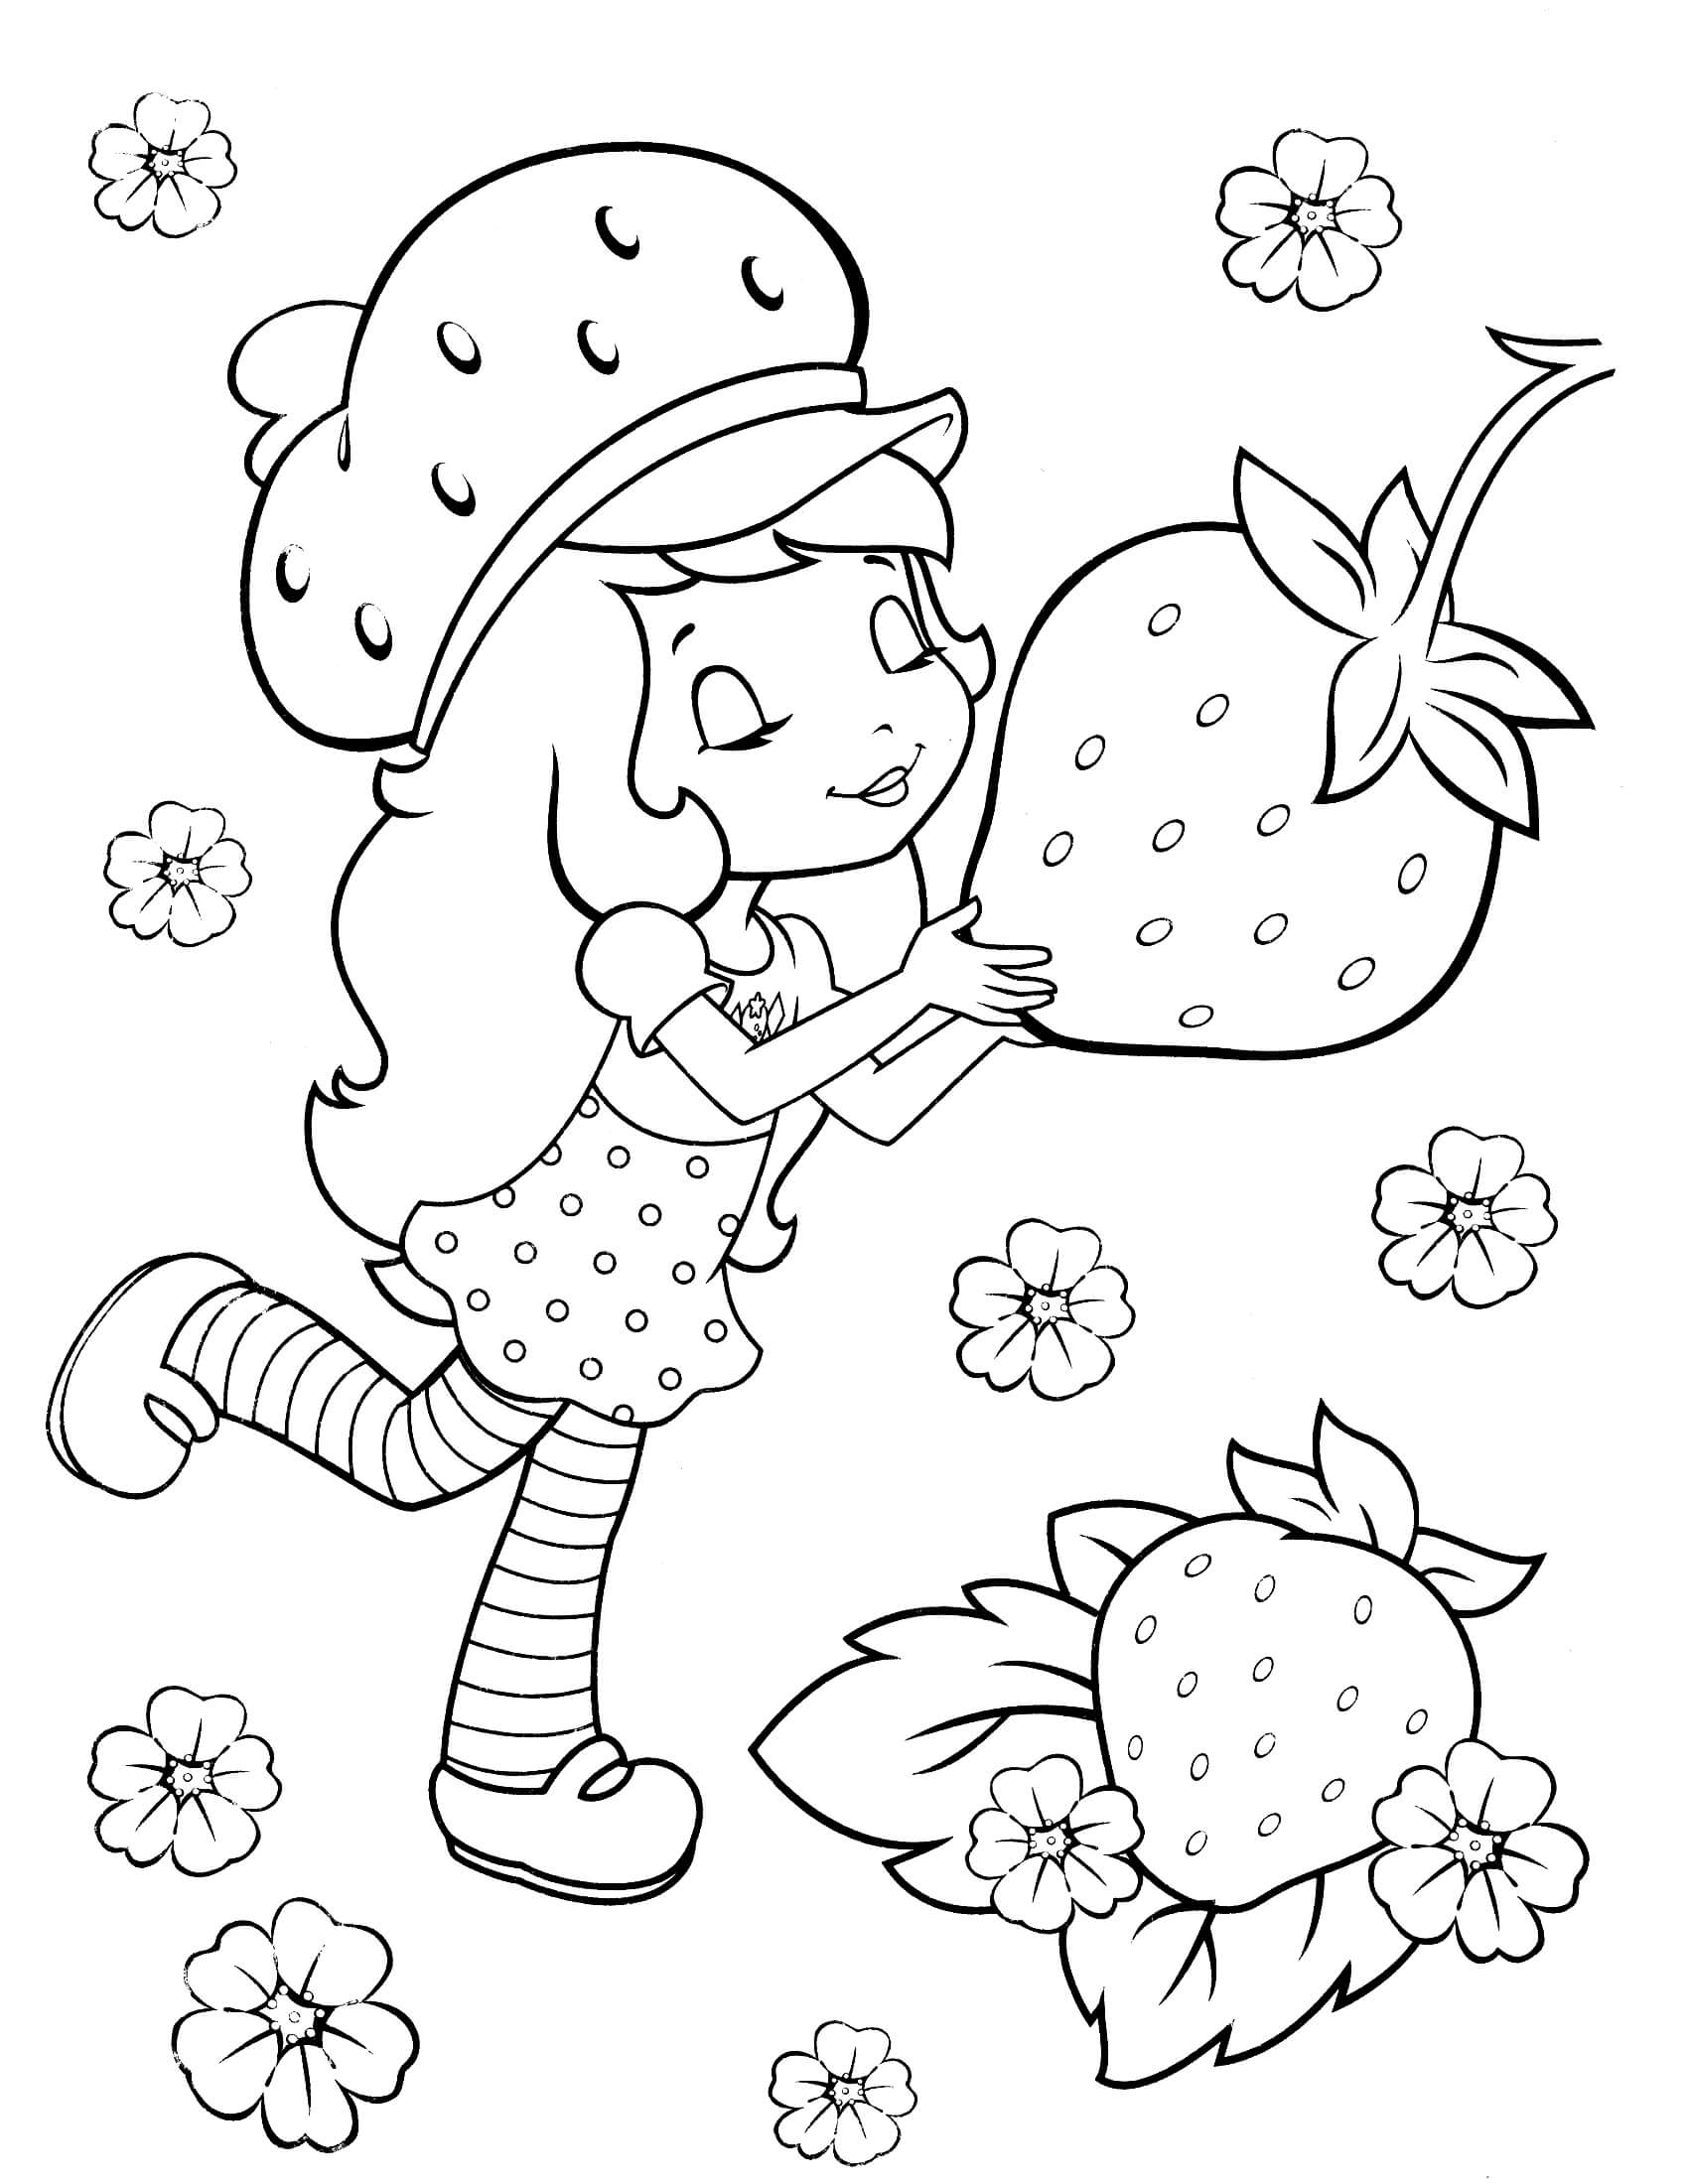 strawberry shortcake drawing pages cute strawberry drawing at getdrawings free download strawberry drawing pages shortcake